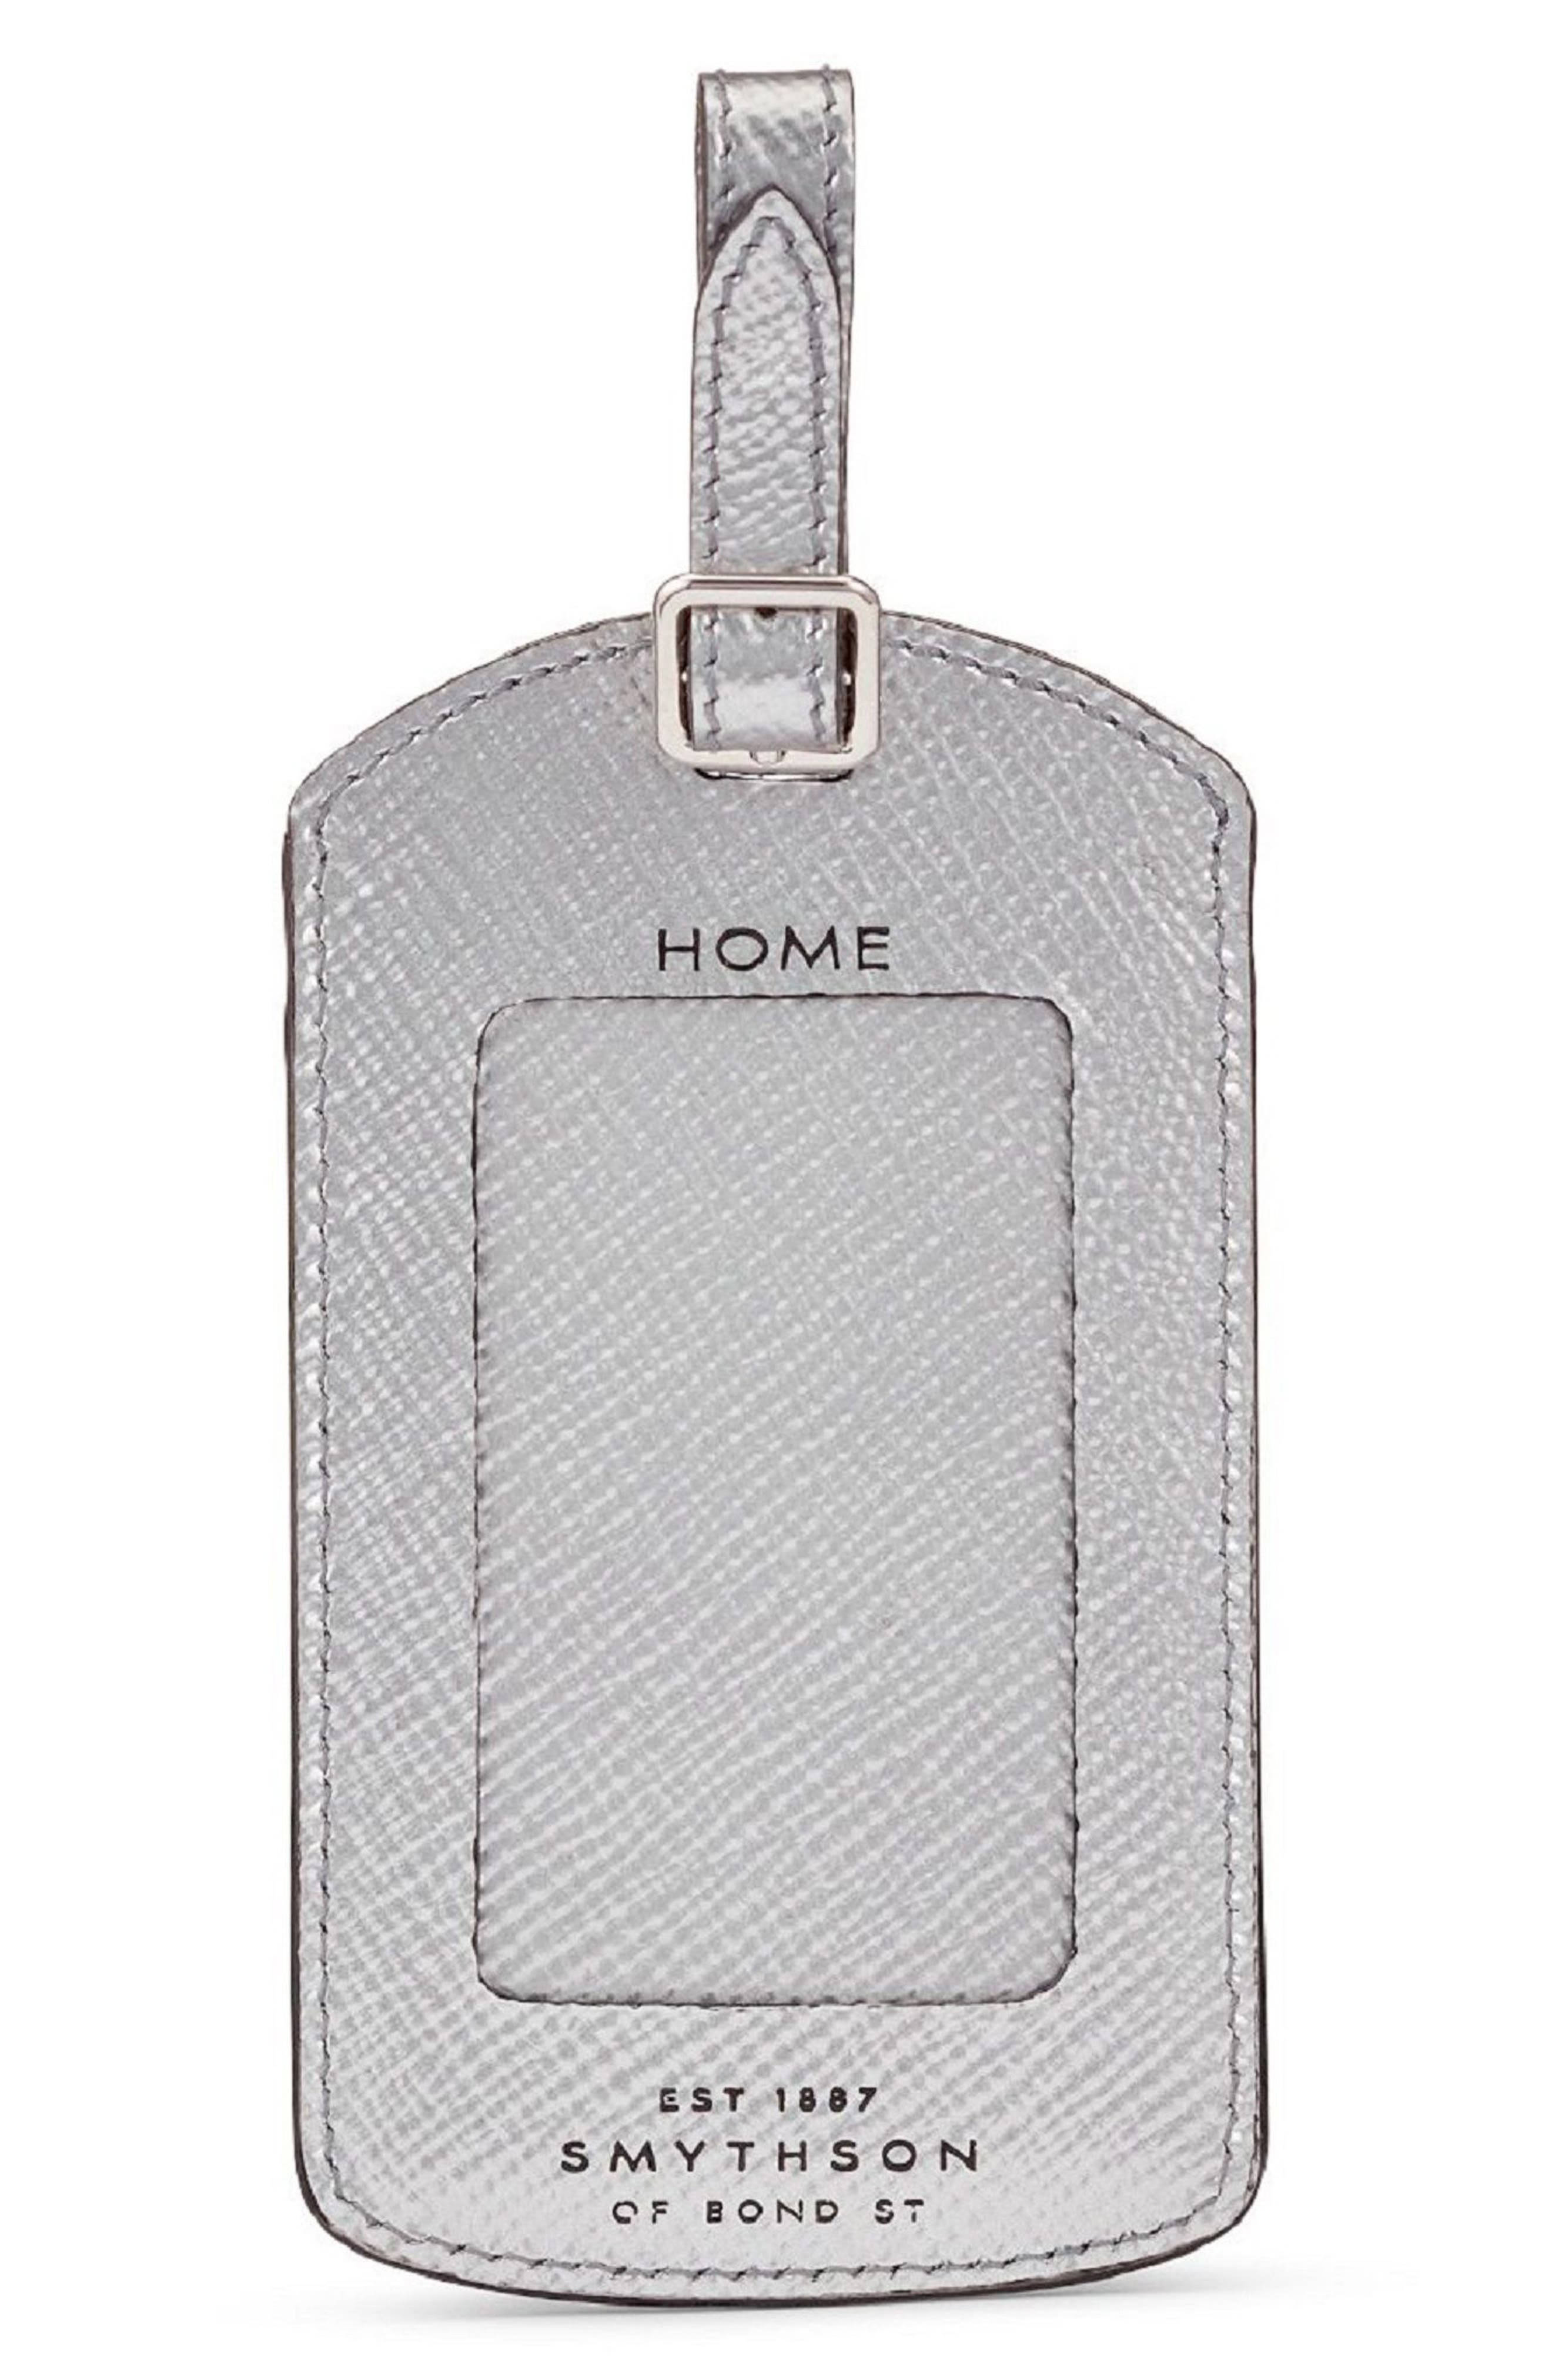 Home/Destination Calfskin Leather Luggage Tag,                             Main thumbnail 1, color,                             Silver